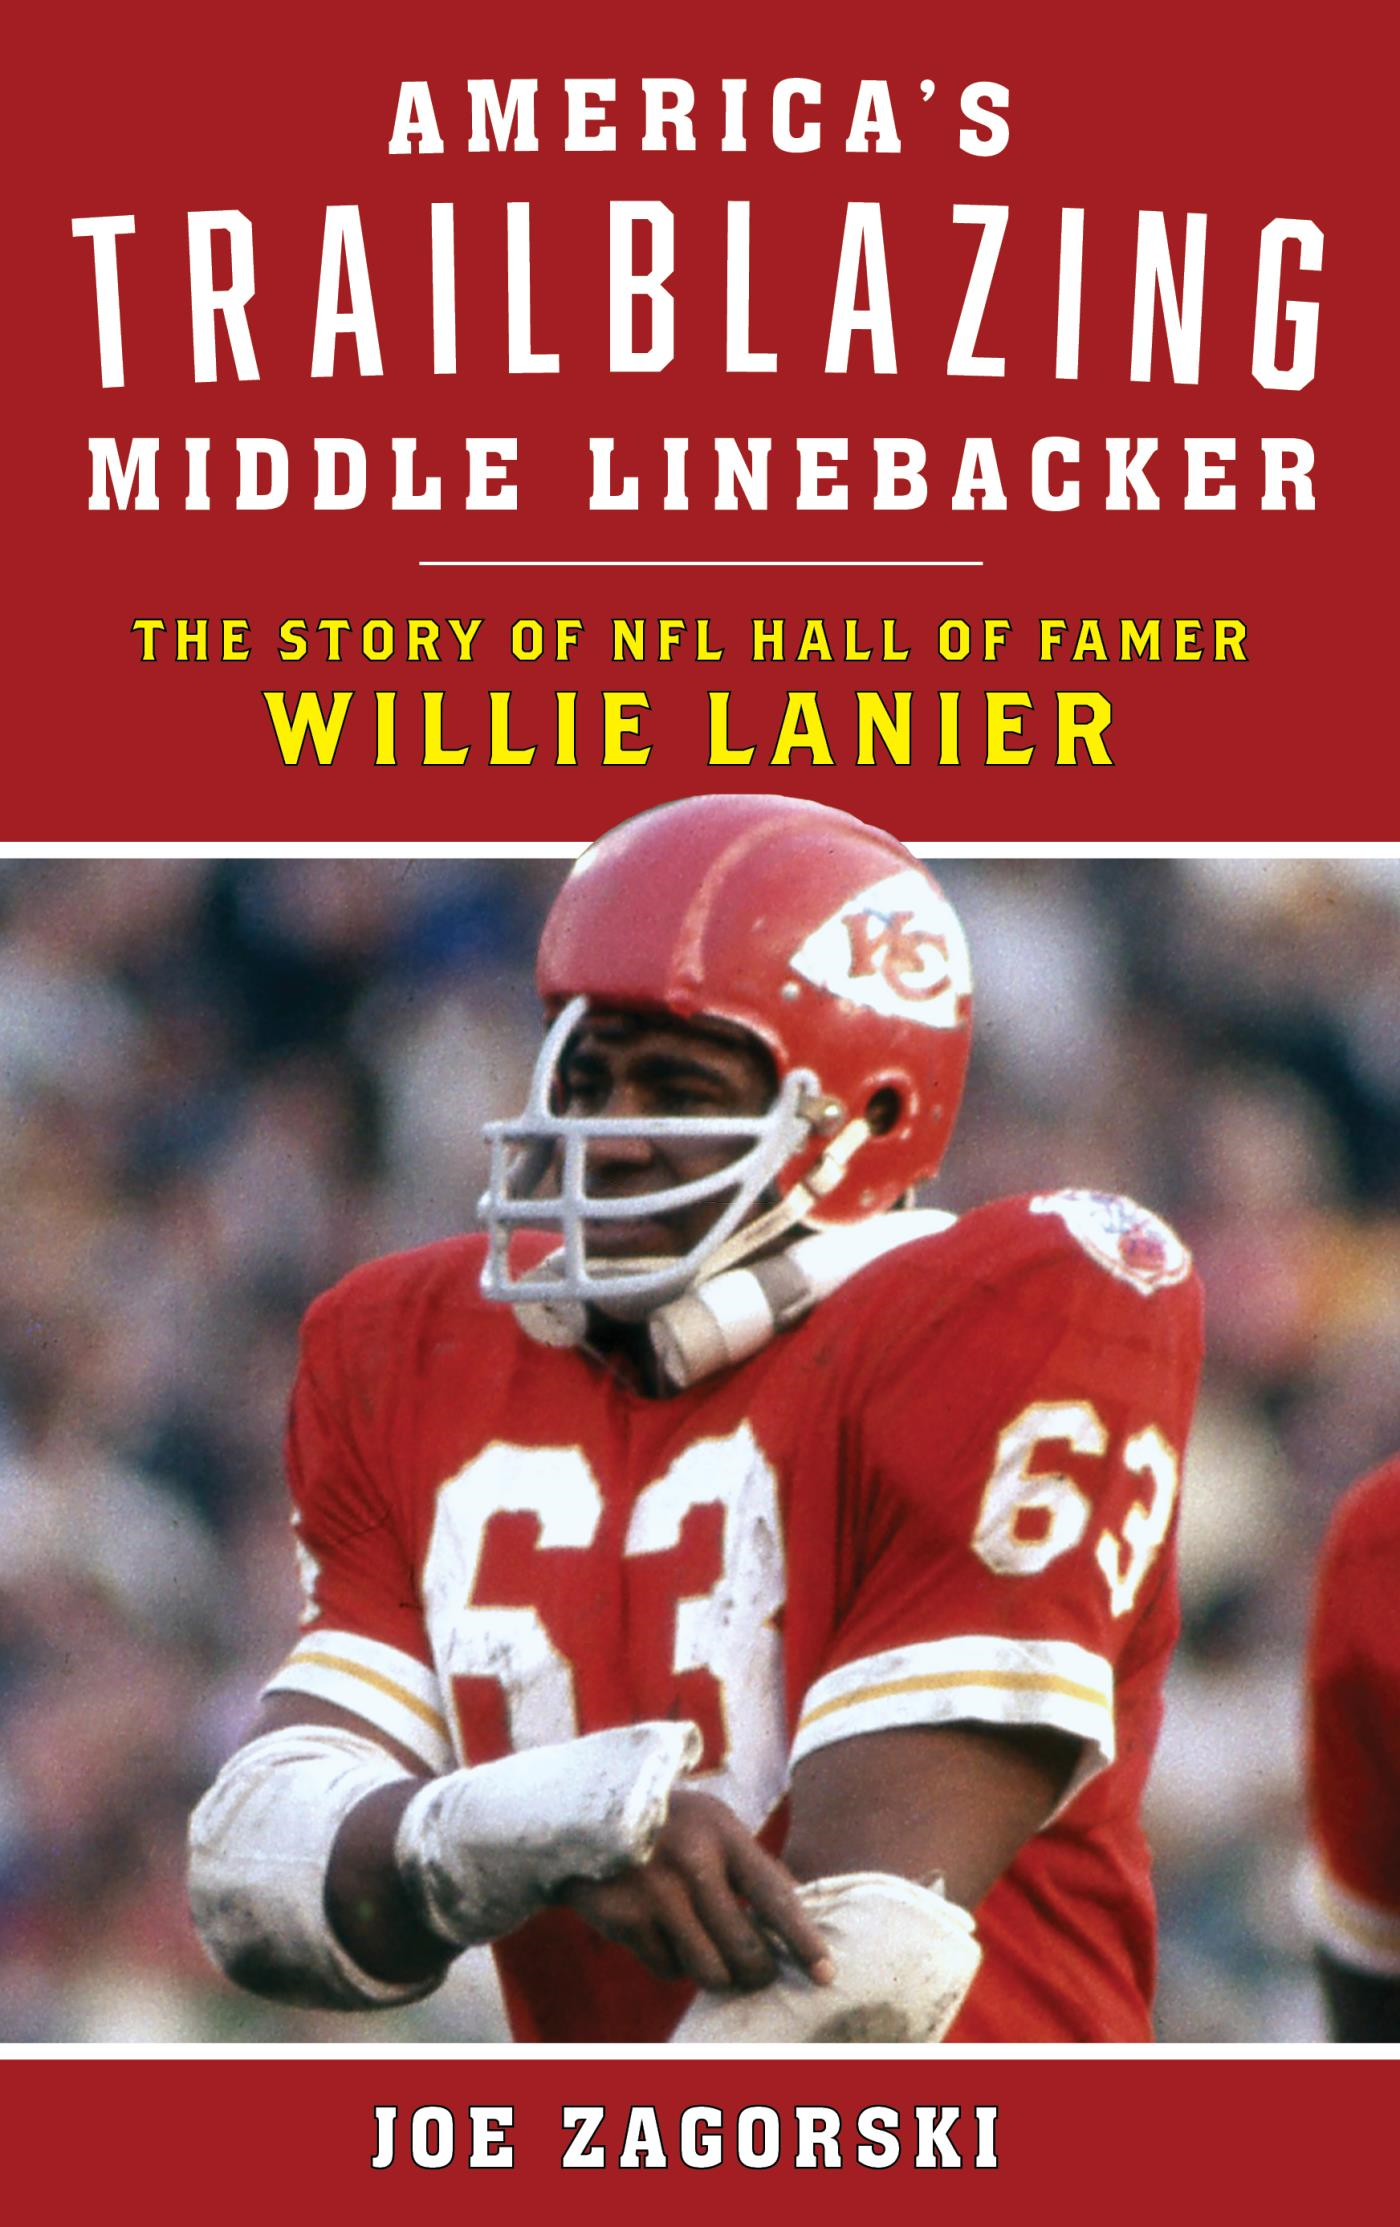 America's Trailblazing Middle Linebacker